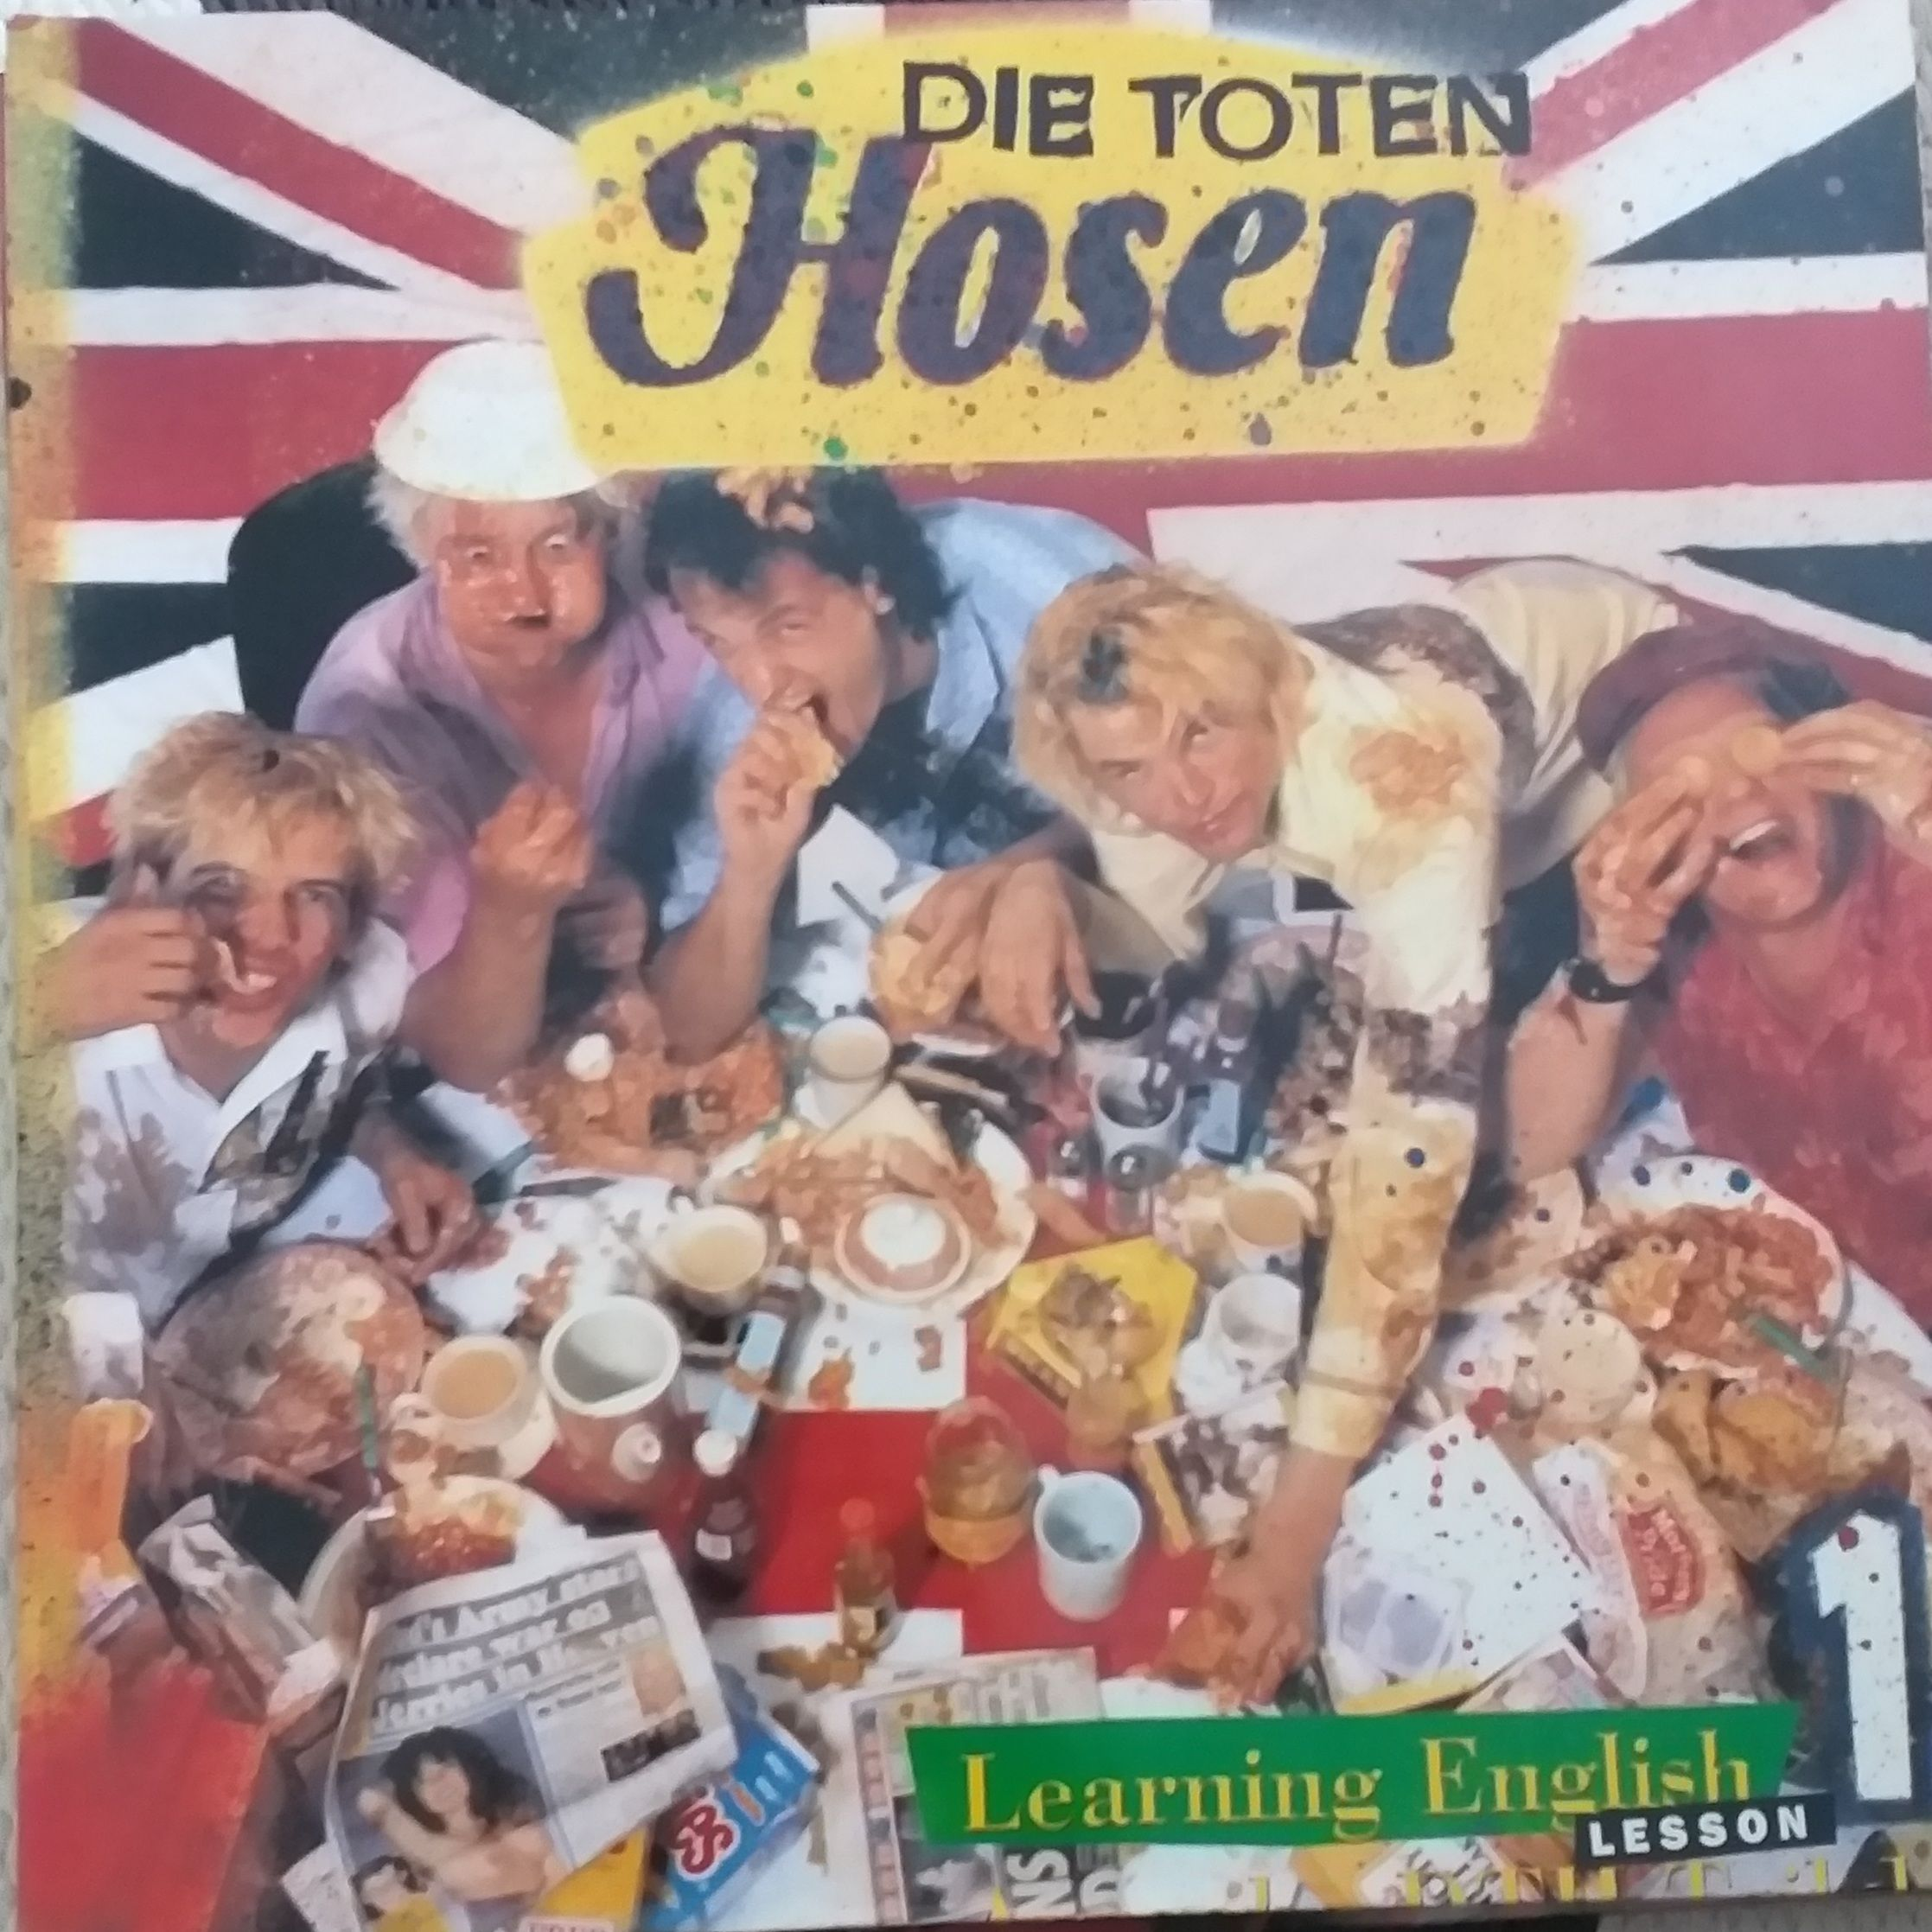 Die Toten hosen Learning English lesson 1 LP undefined